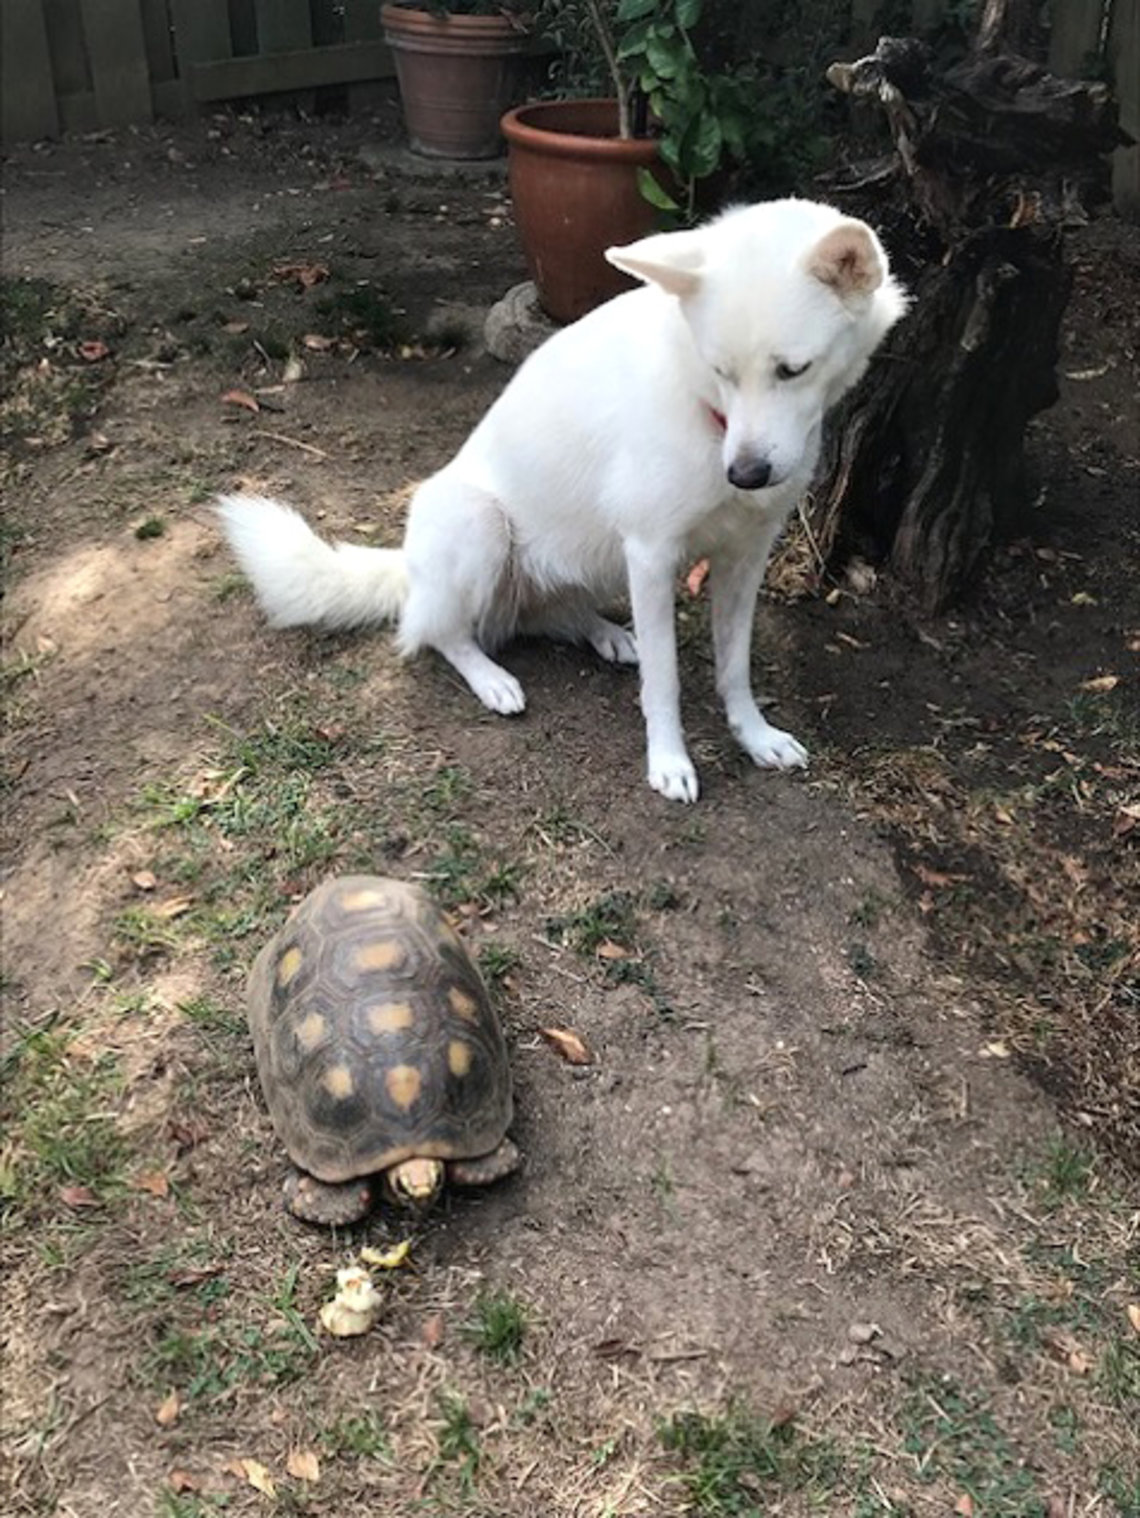 A dog looks at a turtle